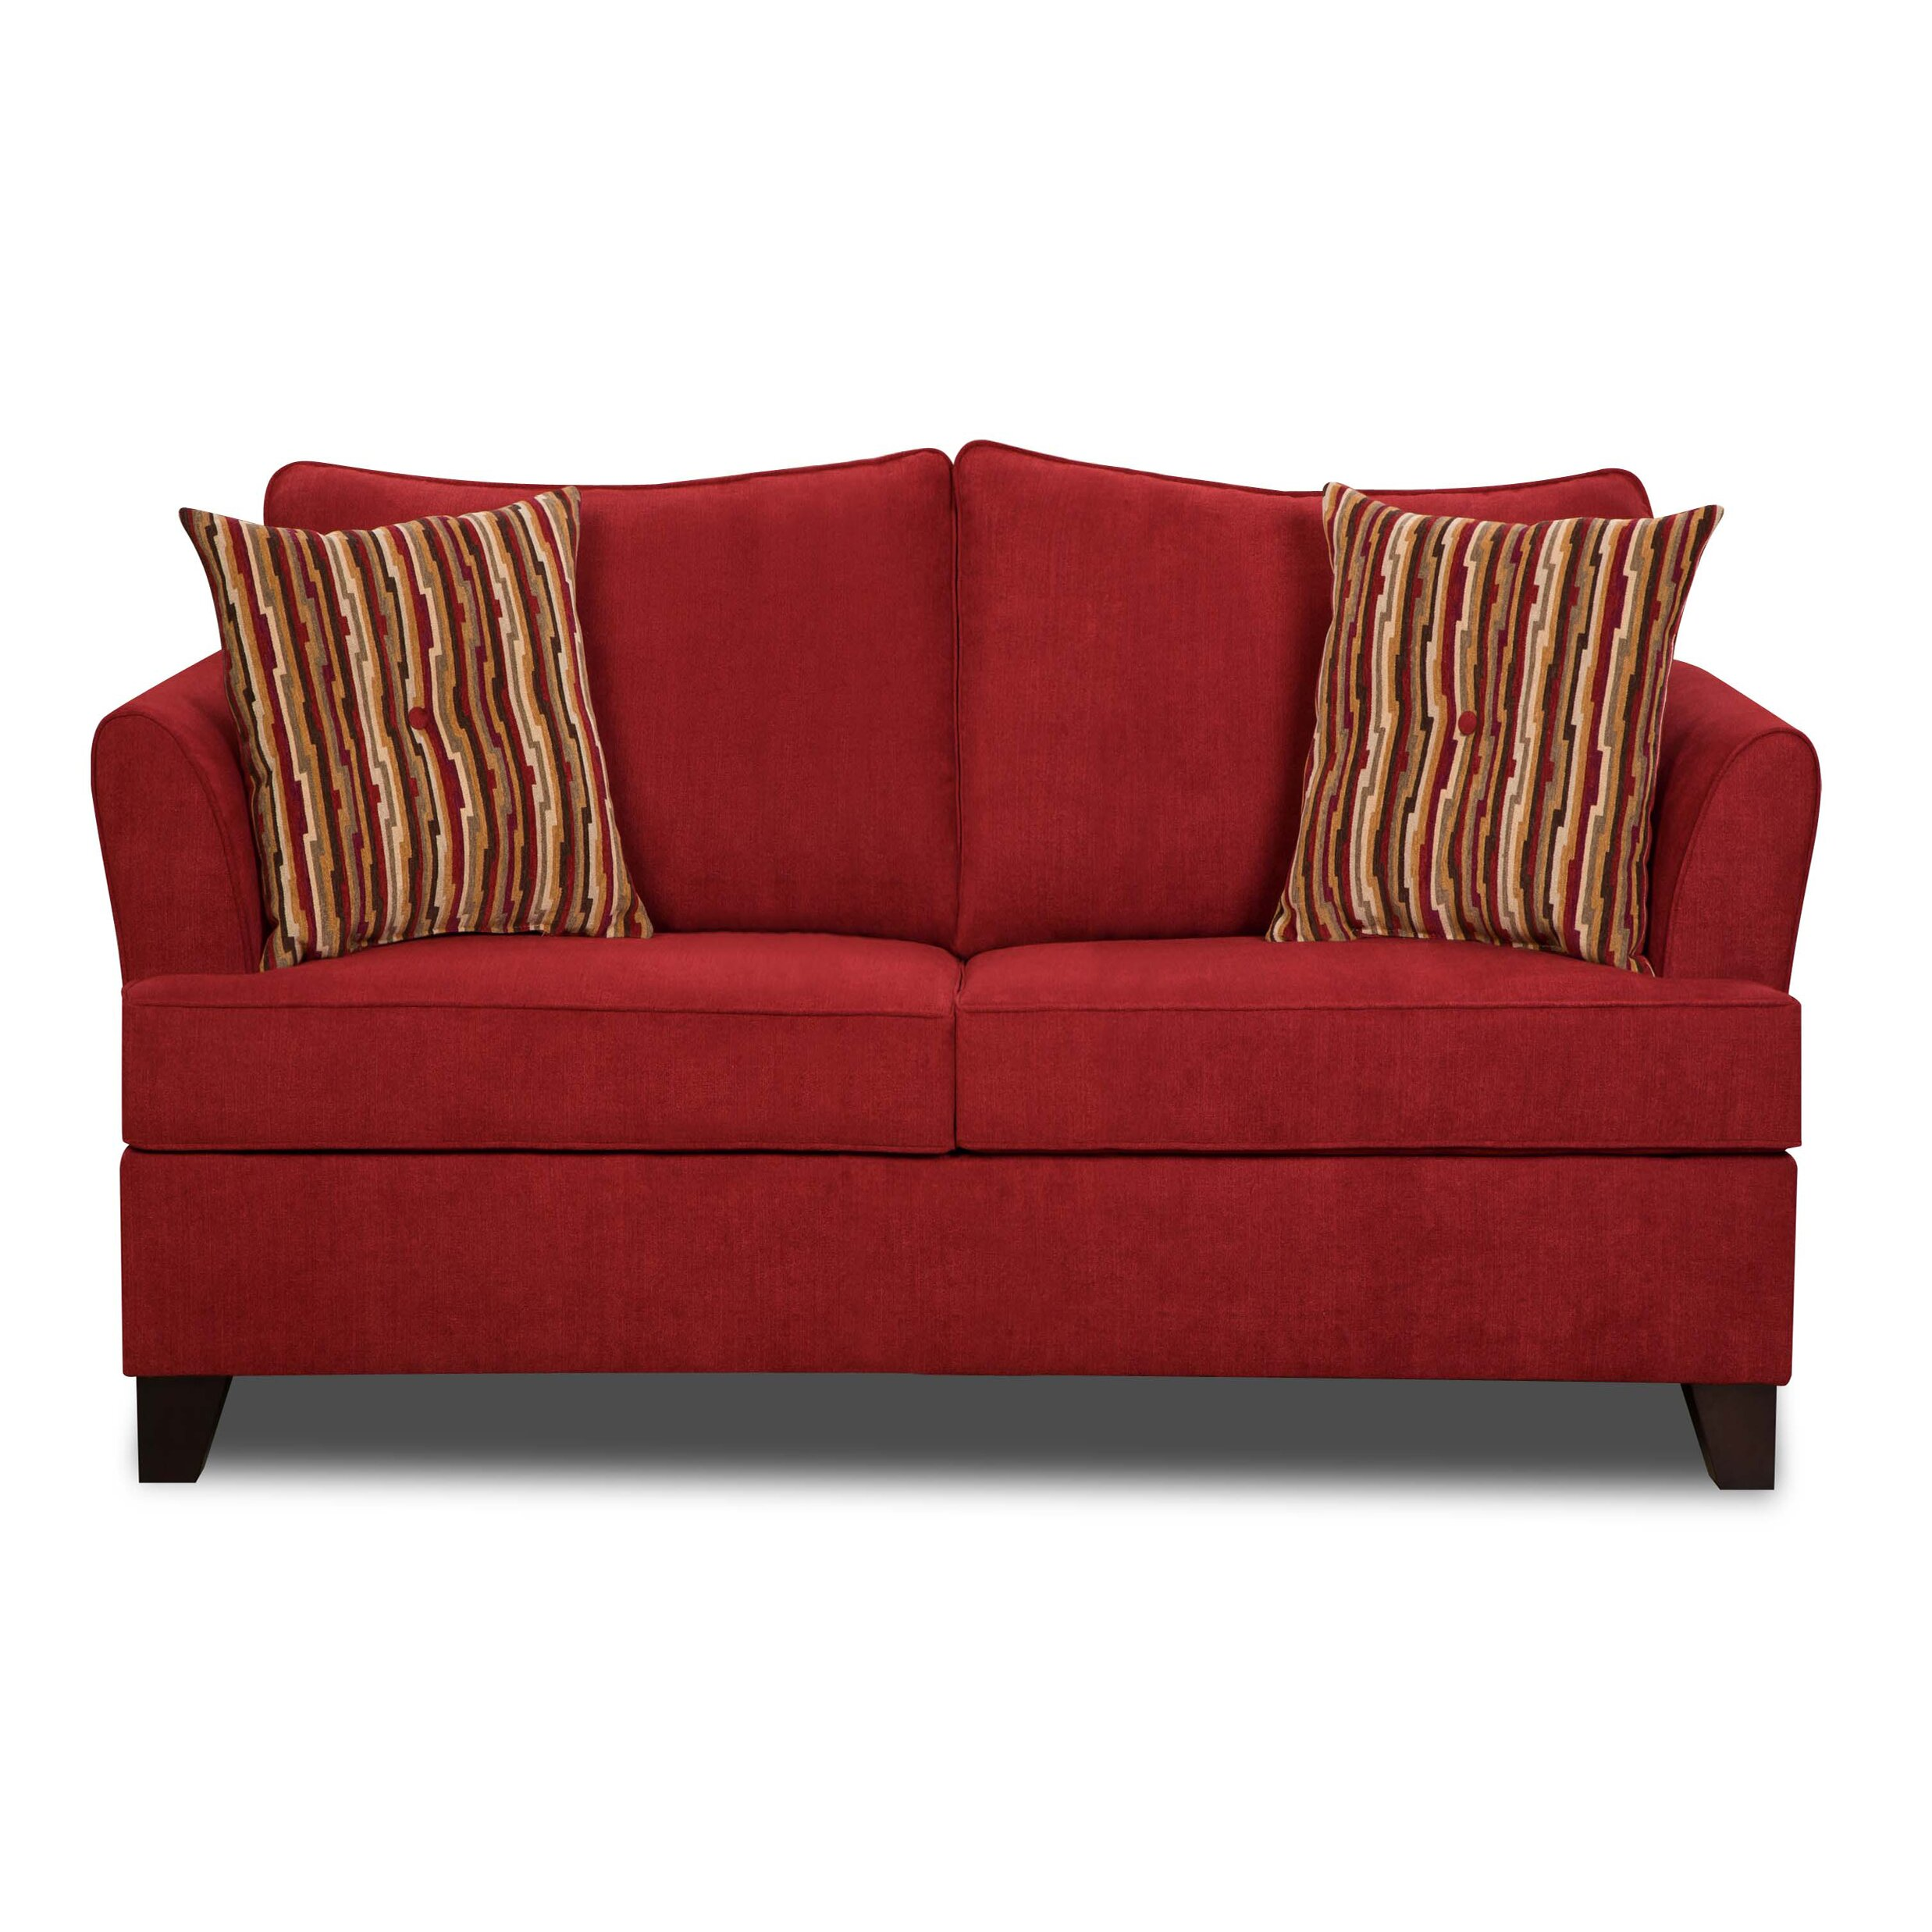 Simmons Sleeper Sofa: Red Barrel Studio Simmons Upholstery Antin Loveseat